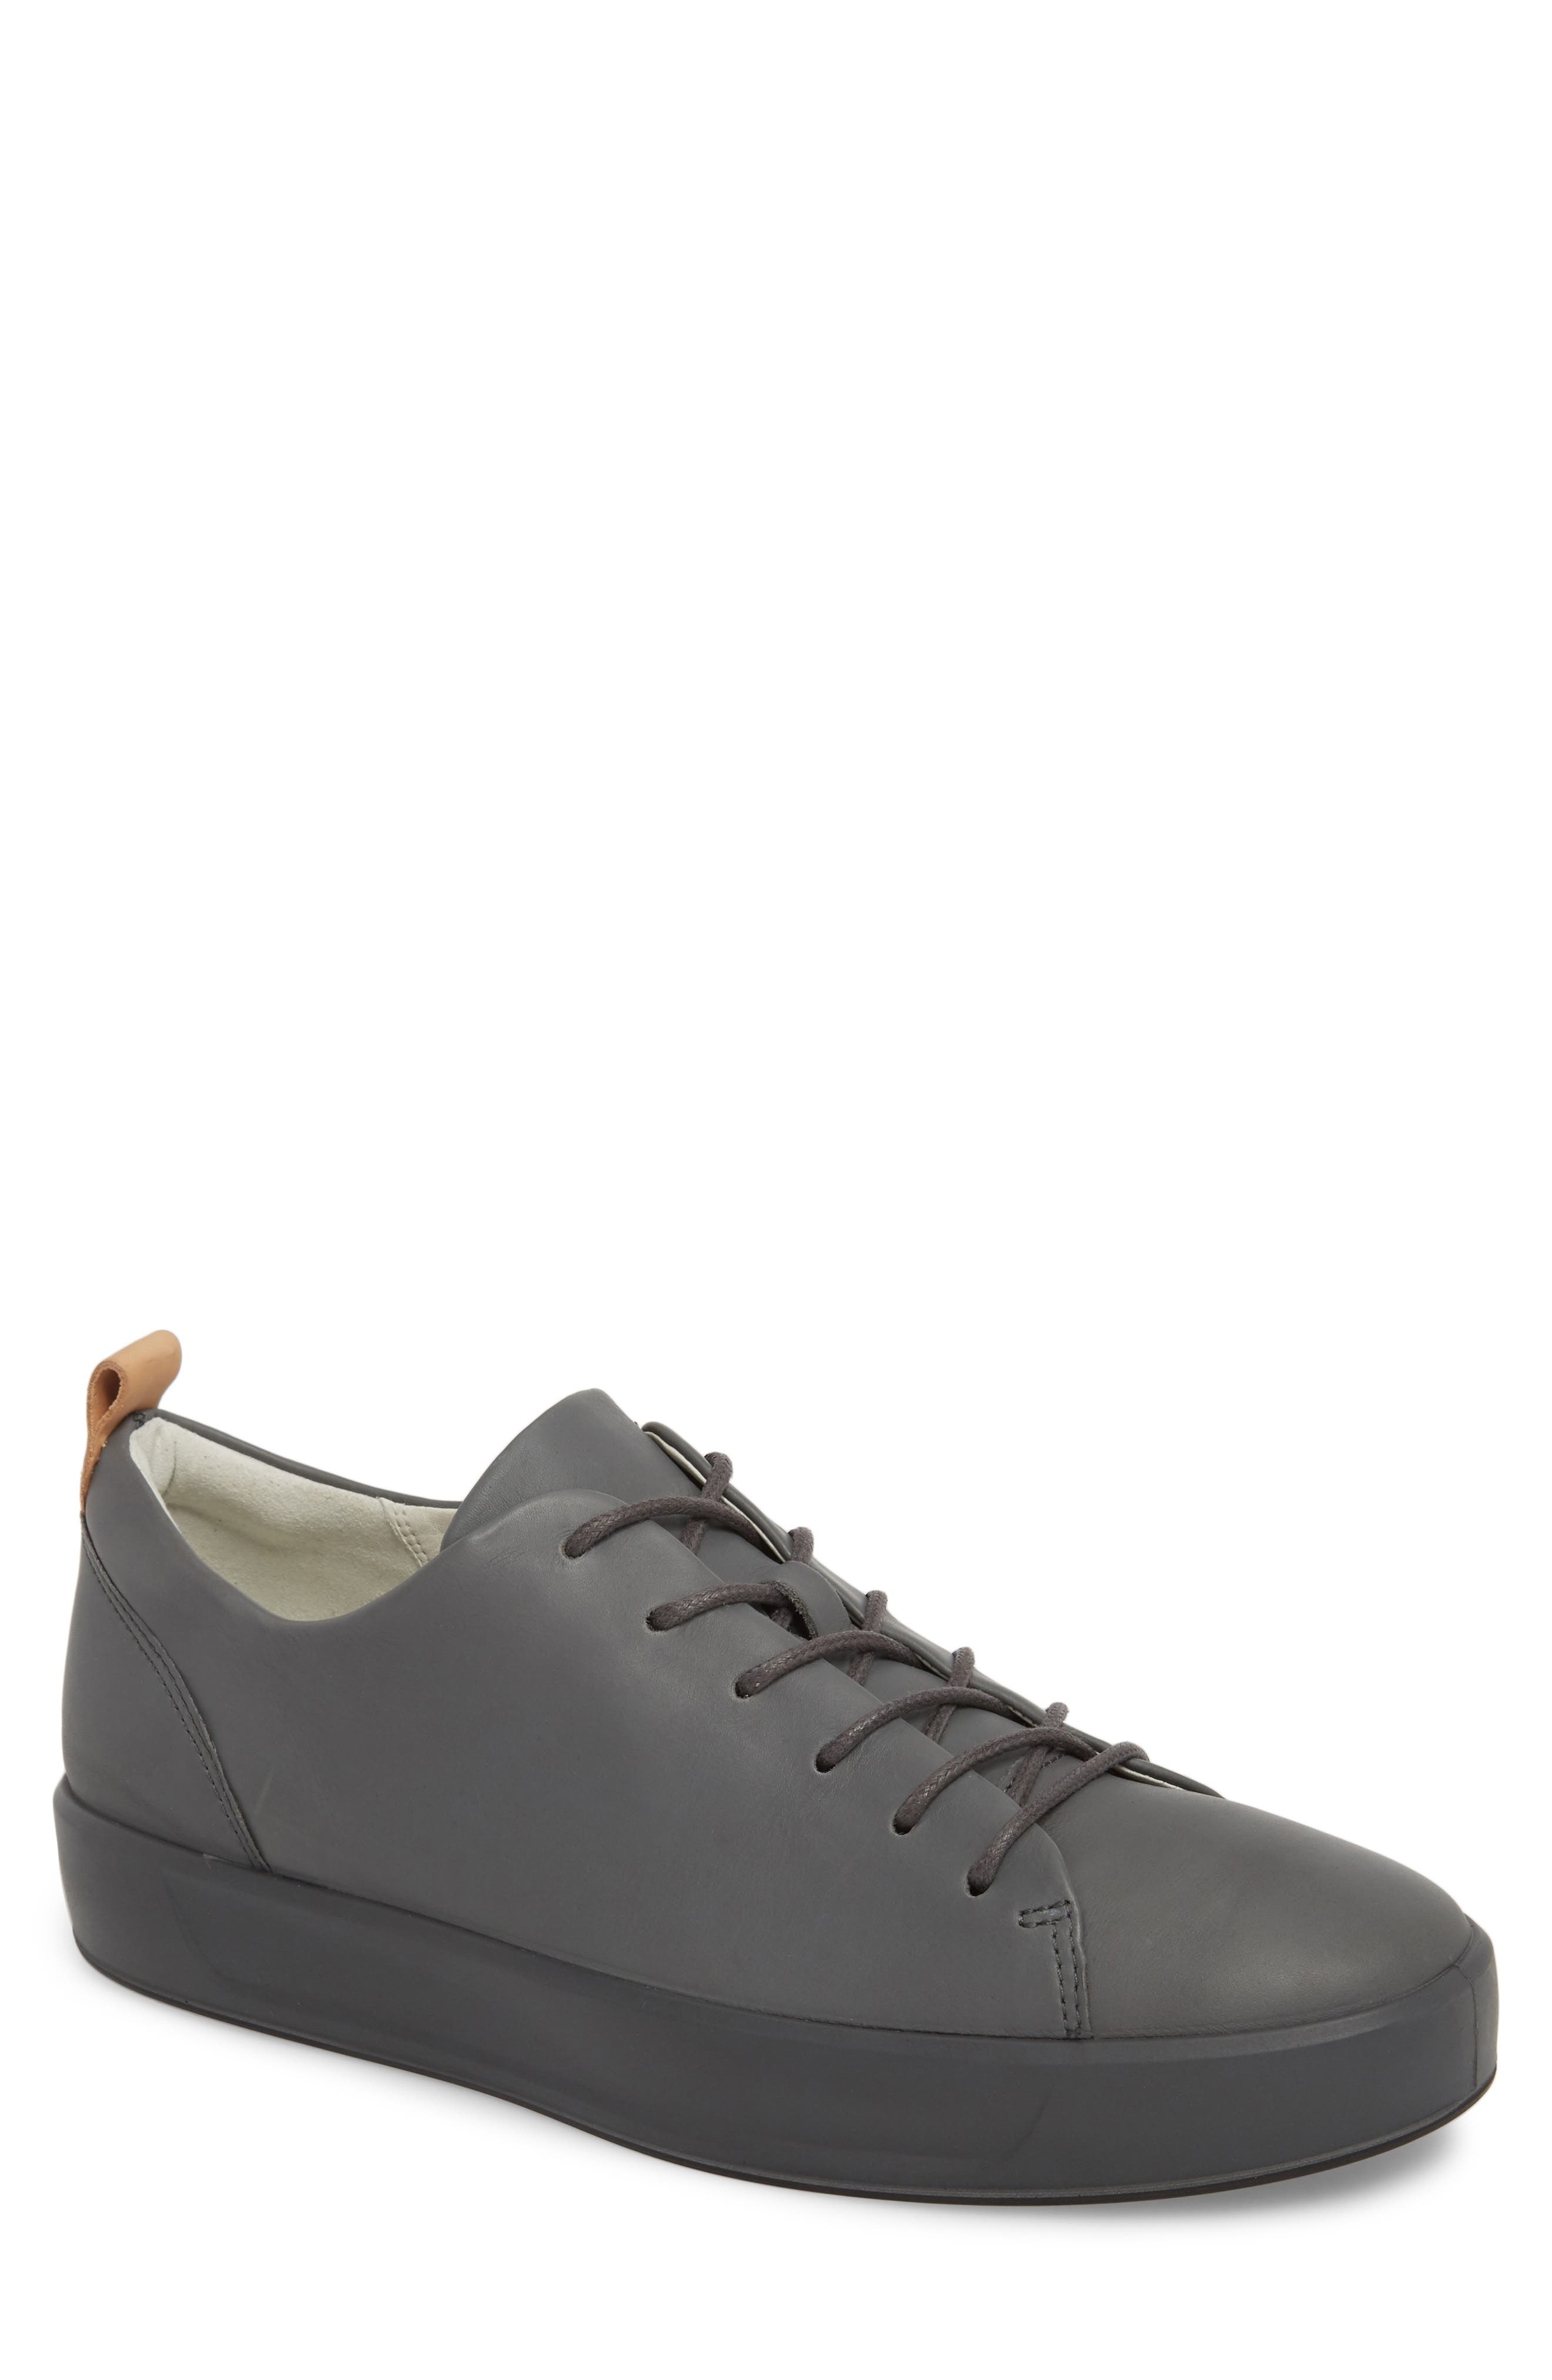 Soft 8 Low Top Sneaker,                             Main thumbnail 1, color,                             Urban Grey Leather